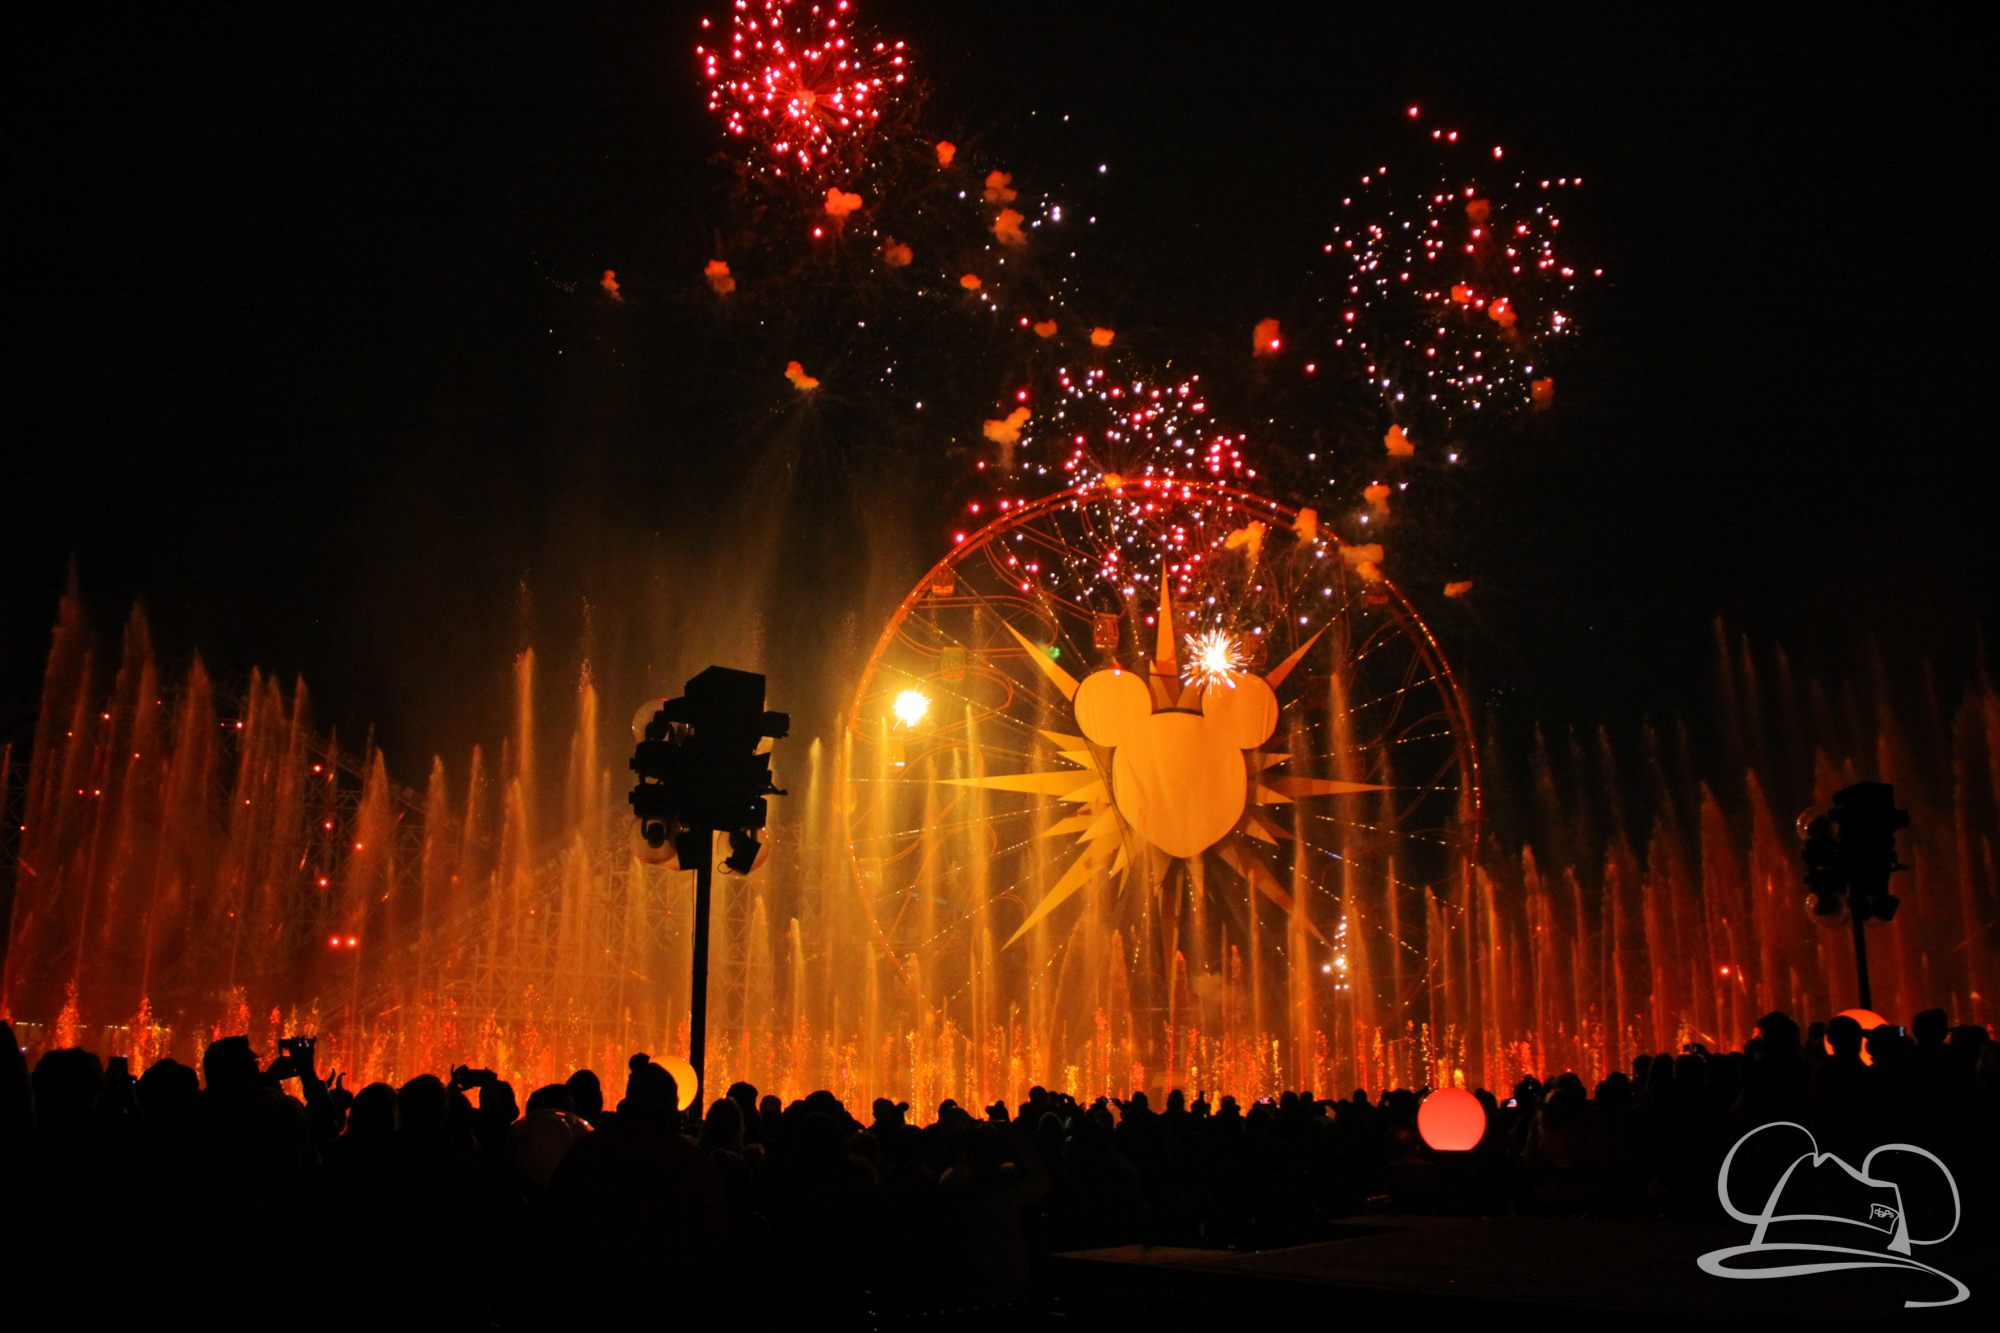 Disneyland Resort's World of Color Celebrates Lunar New Year With 'Hurry Home – Lunar New Year Celebration'